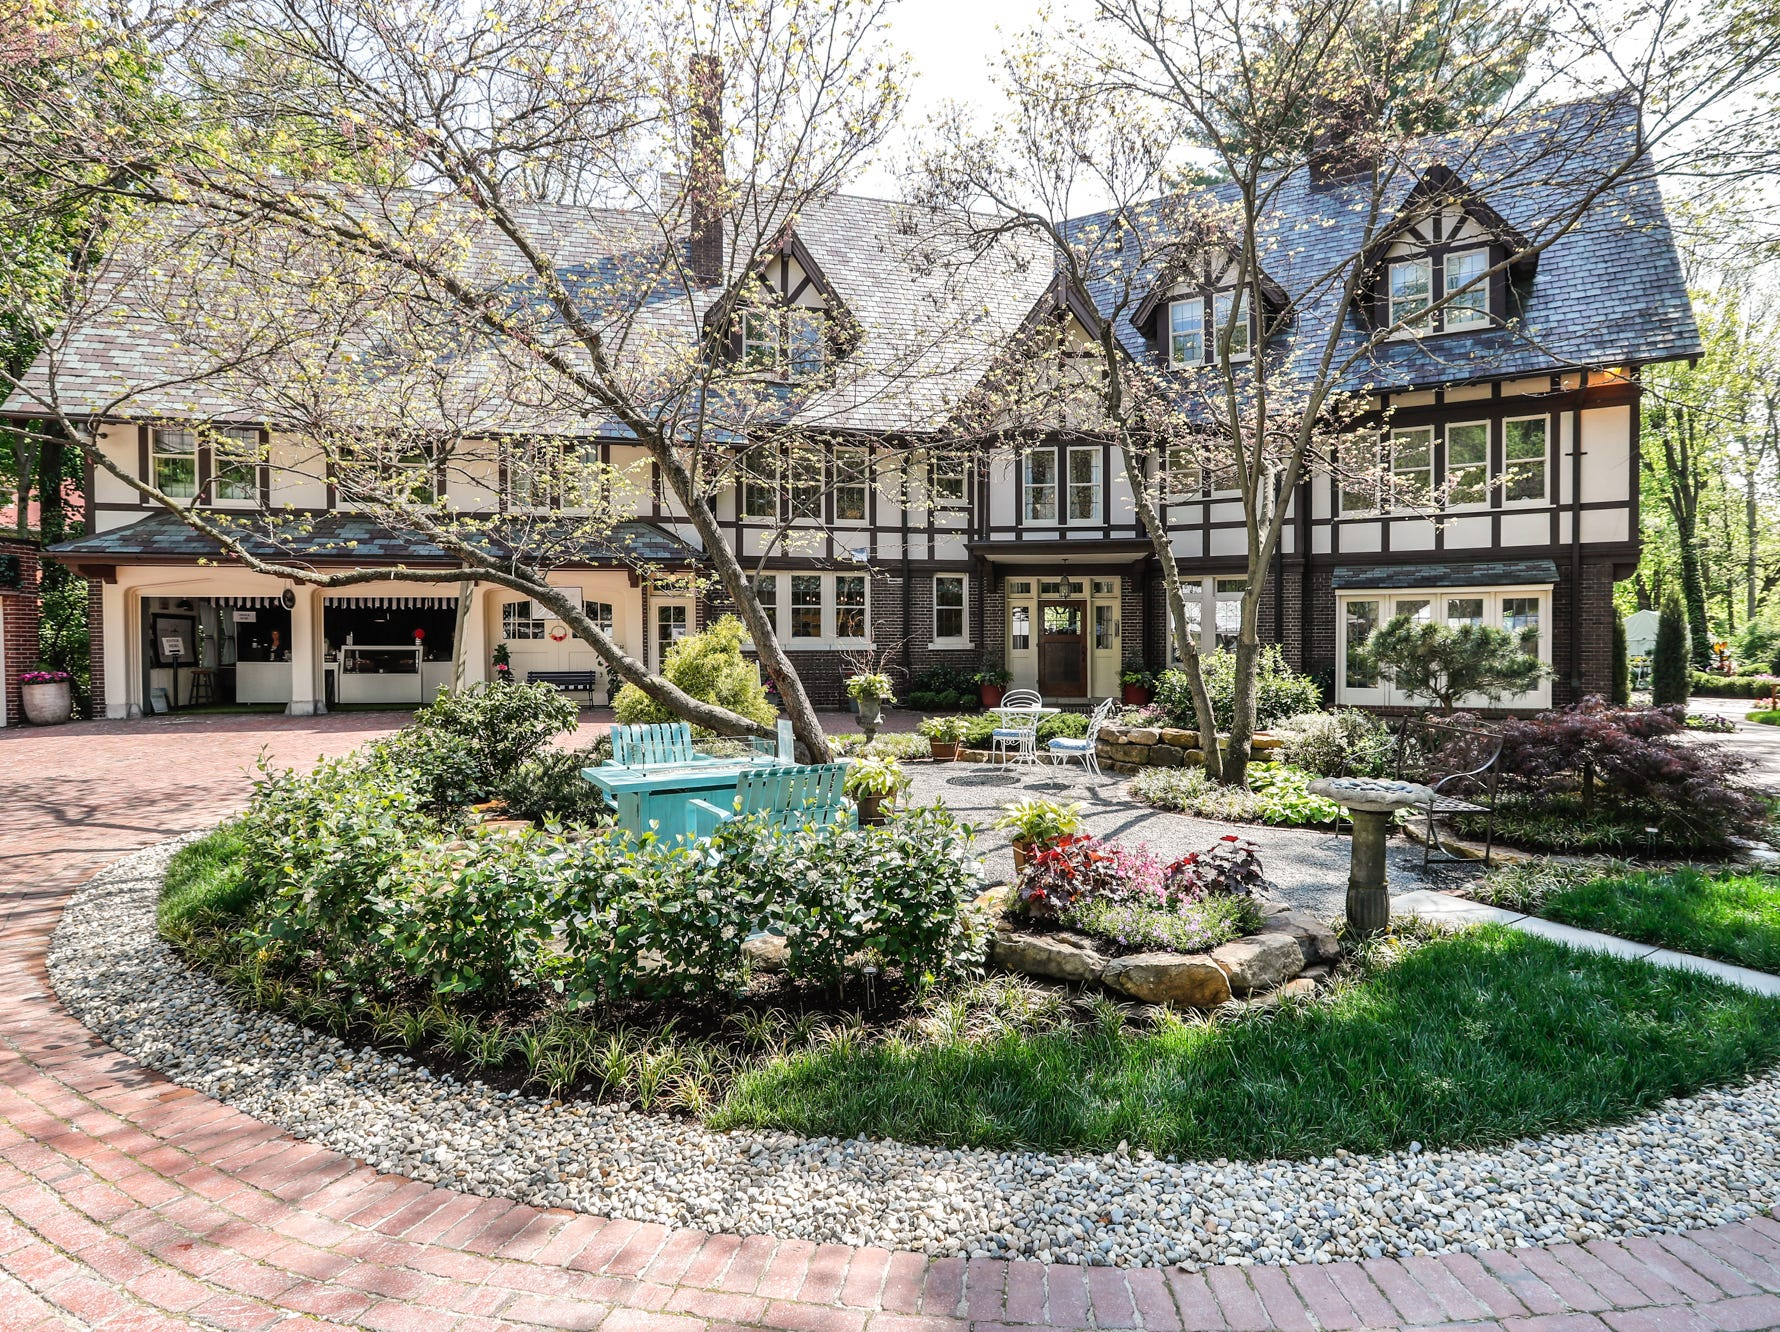 Rear view of the 58th annual St. Margaret's Hospital Guild Decorators' Show House and Gardens, located at 4160 Washington Blvd., Indianapolis, on Wednesday, May 8, 2019. The Tudor Revival home, 9,163 square feet, was also a Decorator's Show House in 1980. Built in 1919 by Clark E. Mallery and Roberta Spellman Mallery, who was a cofounder of the American Garment Company.